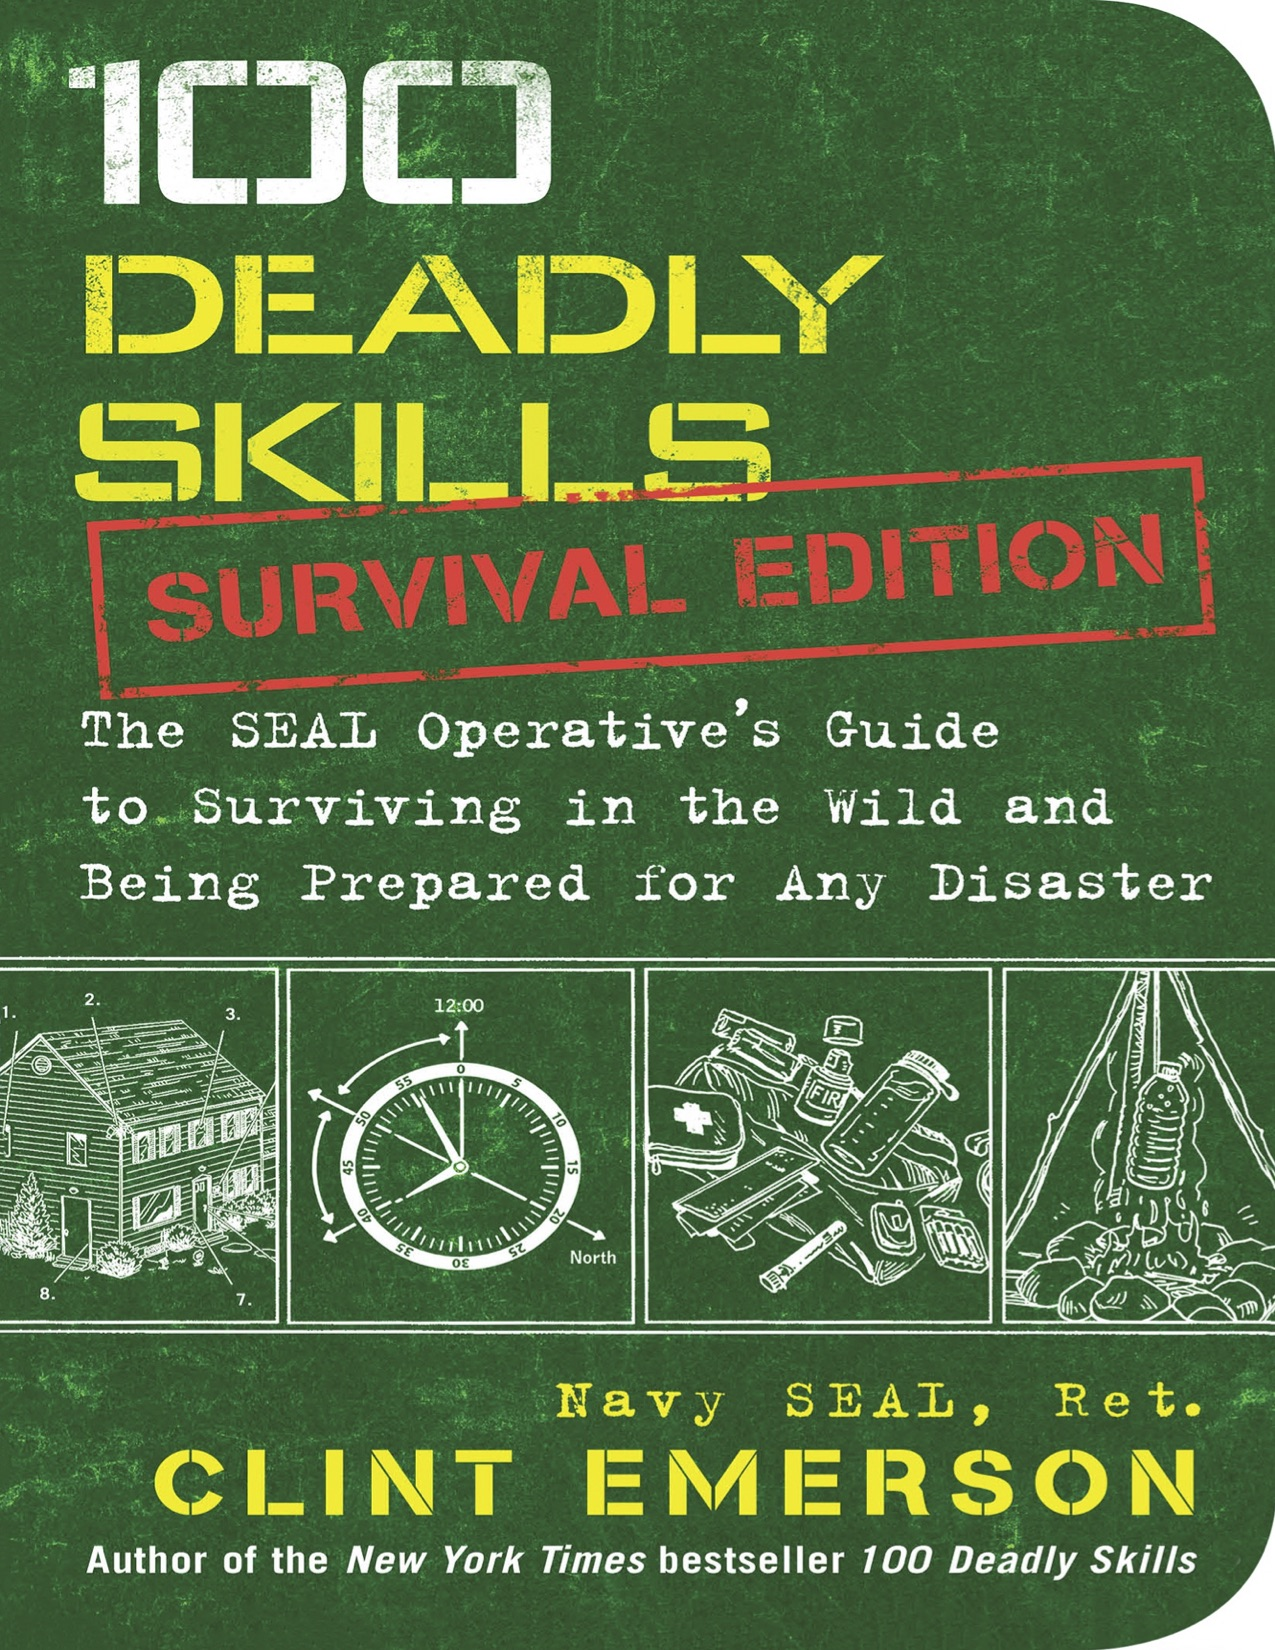 100 Deadly Skills Survival Edition The SEAL Operative's Guide to Surviving in t.jpg